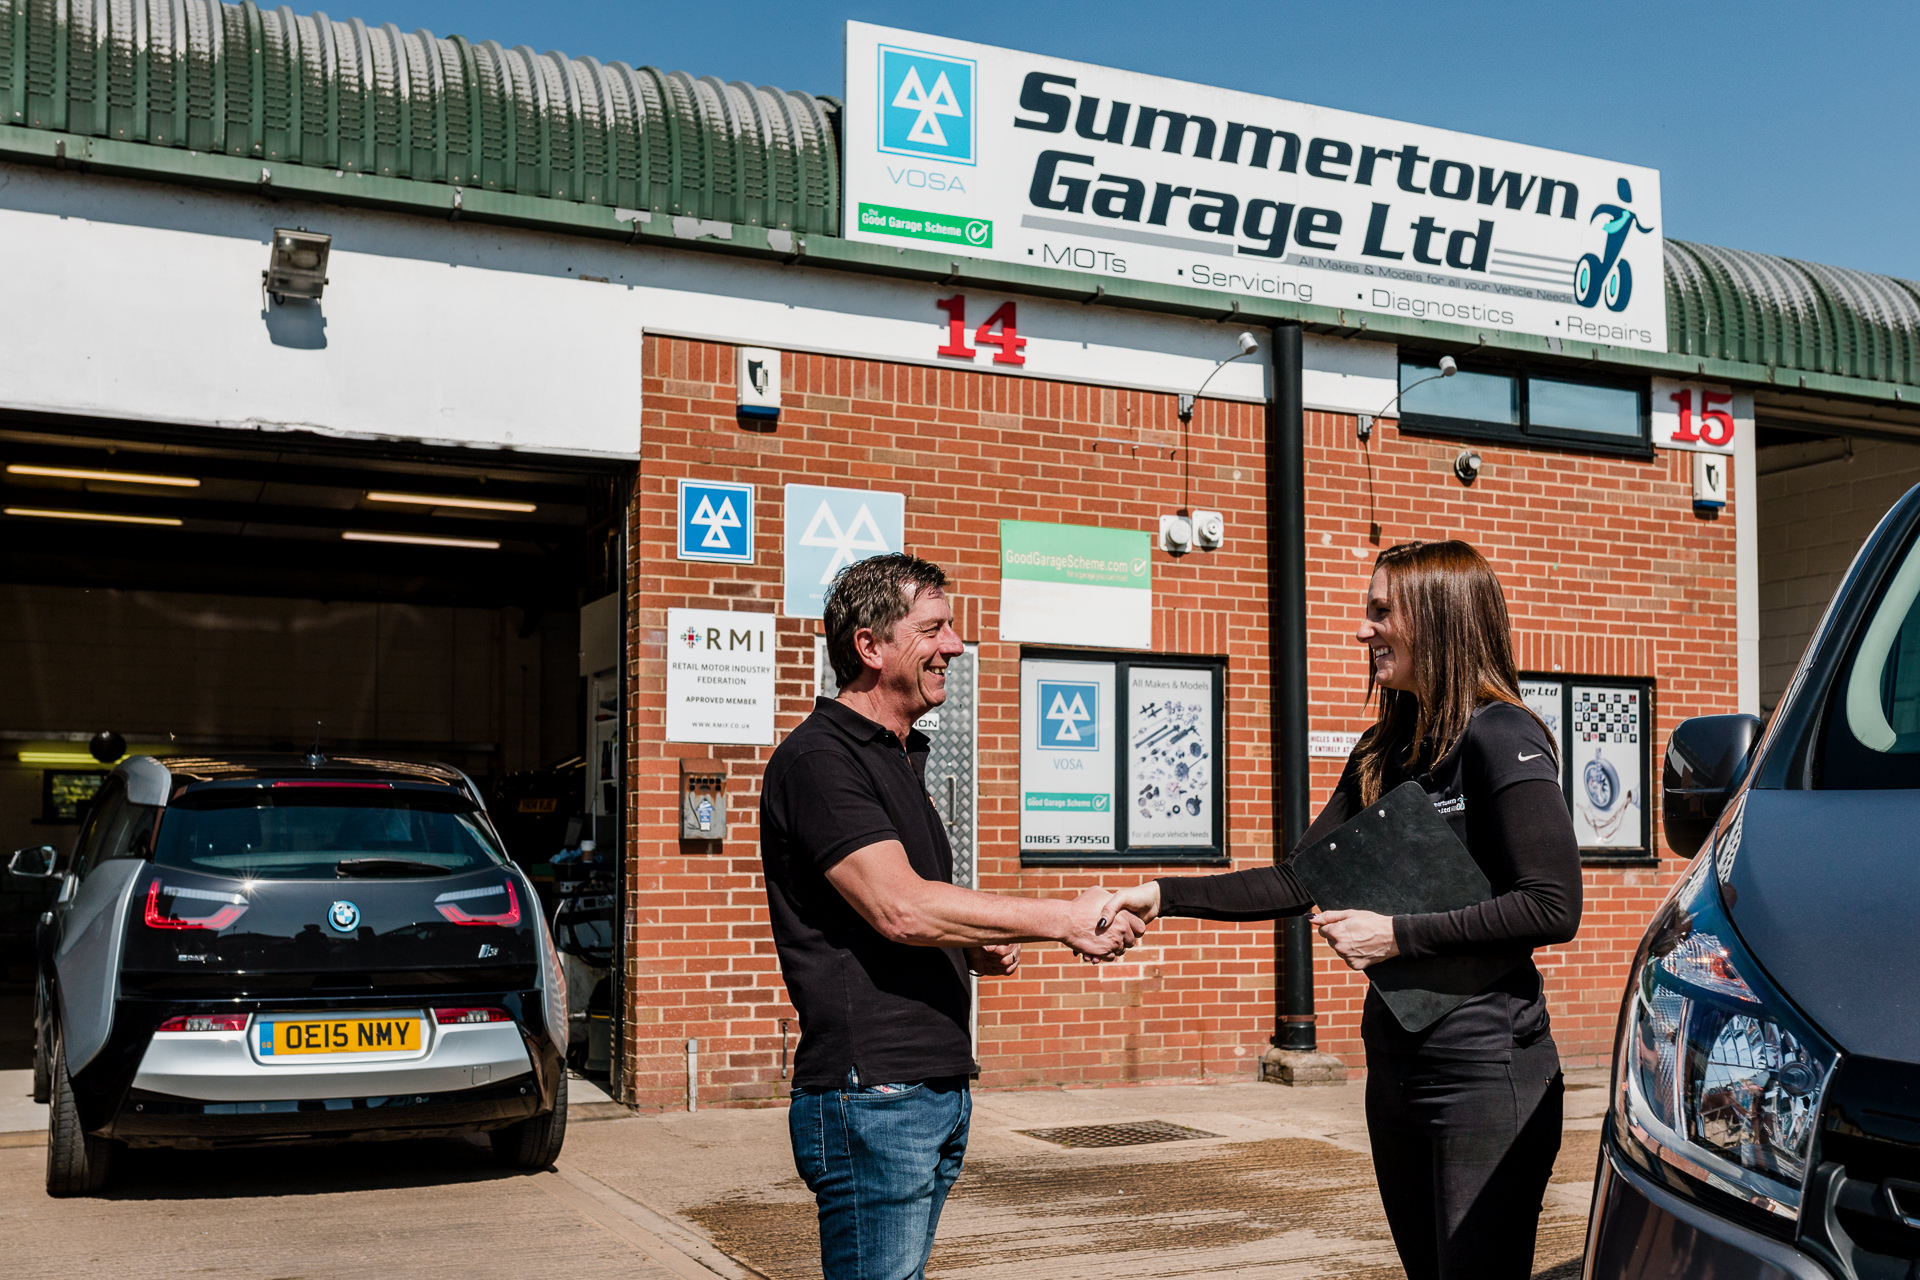 professional commercial PR business lifestyle photographer Summertown Garage Kidlington